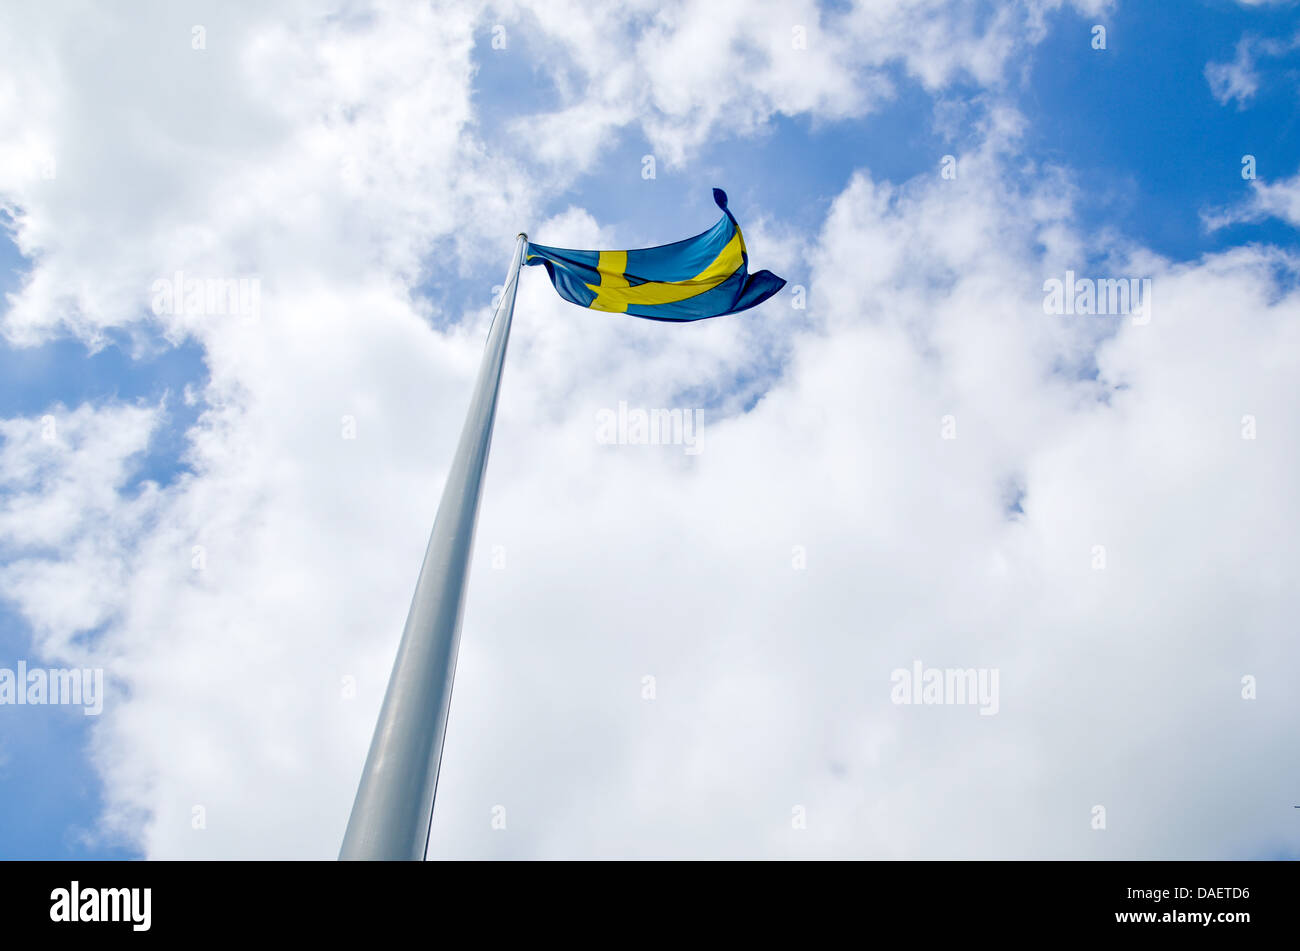 Flag pole wita a swedish flag in the top. - Stock Image